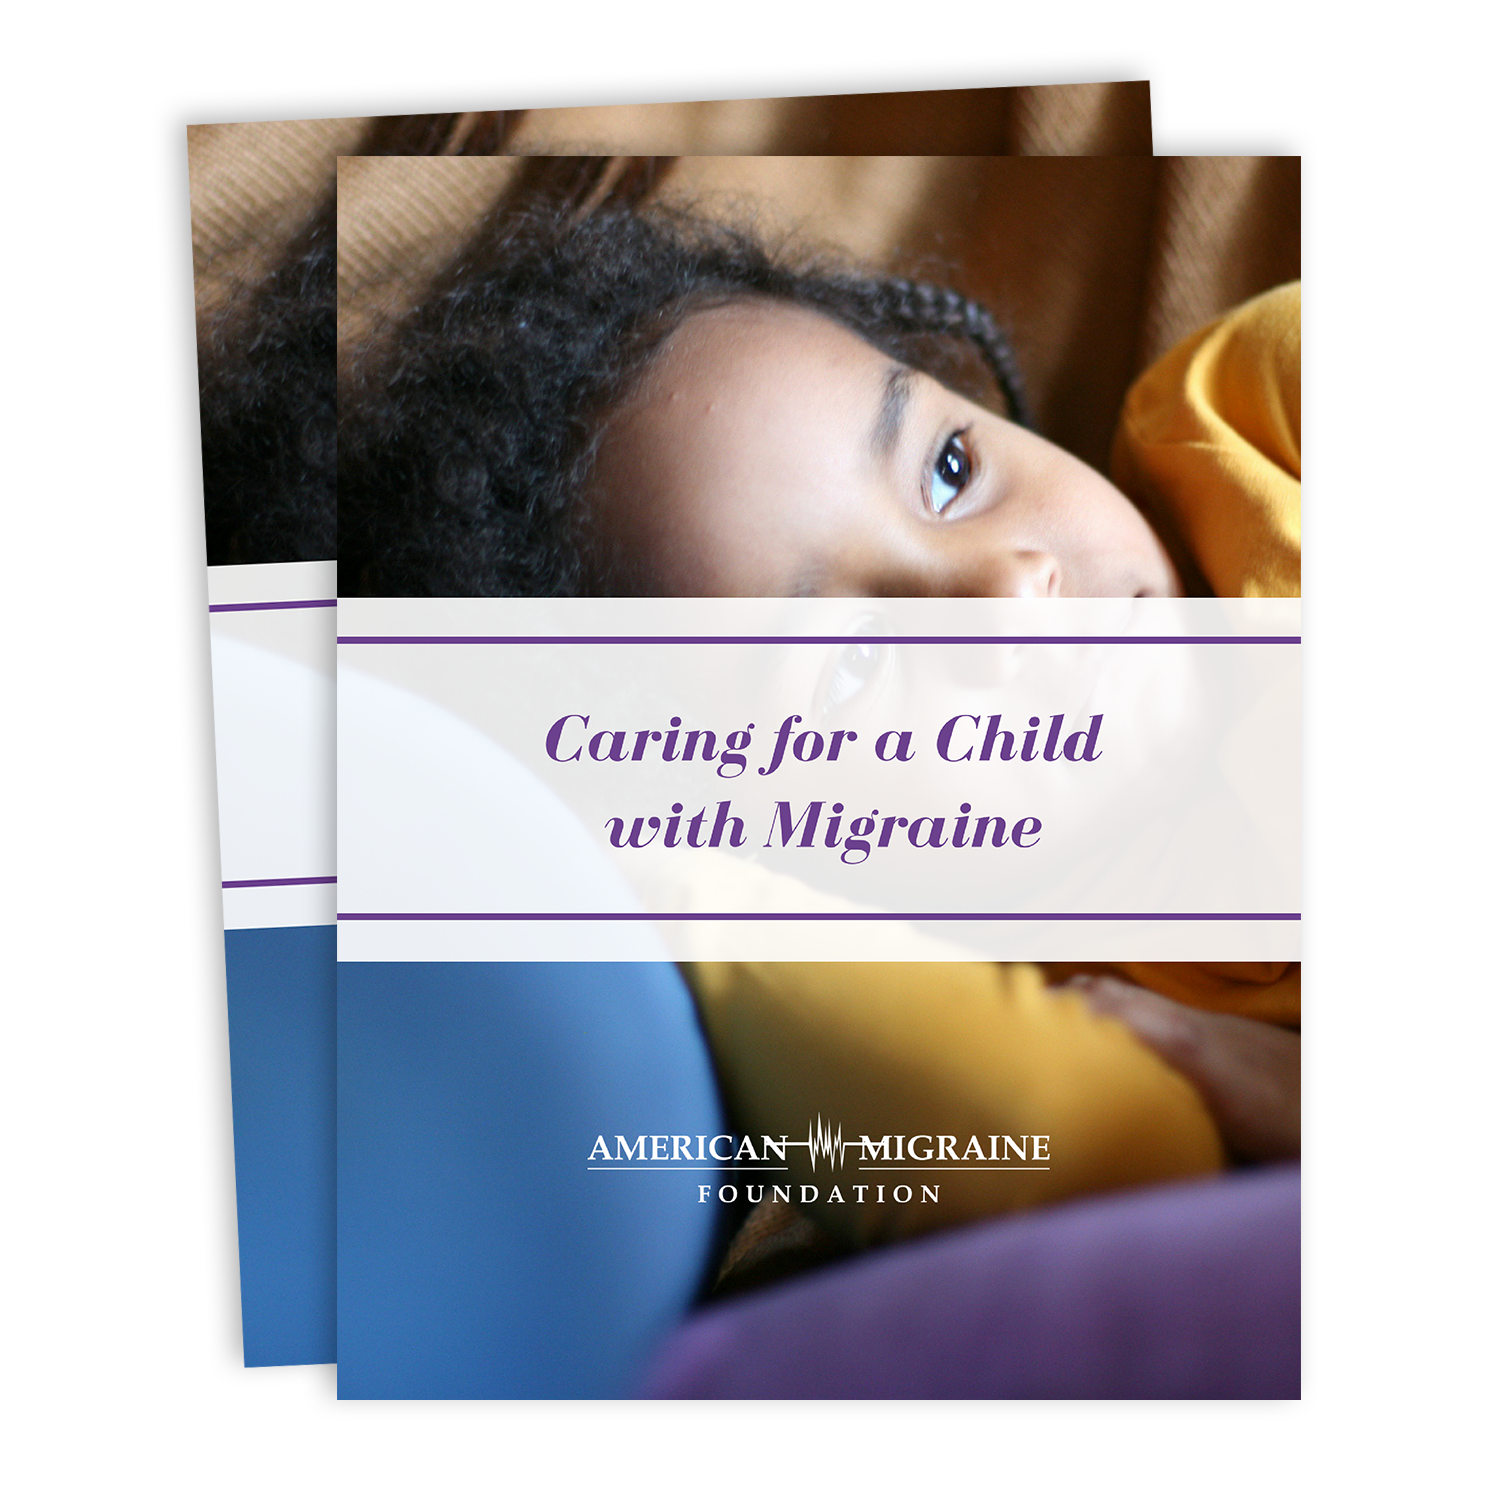 Caring for a Child with Migraine